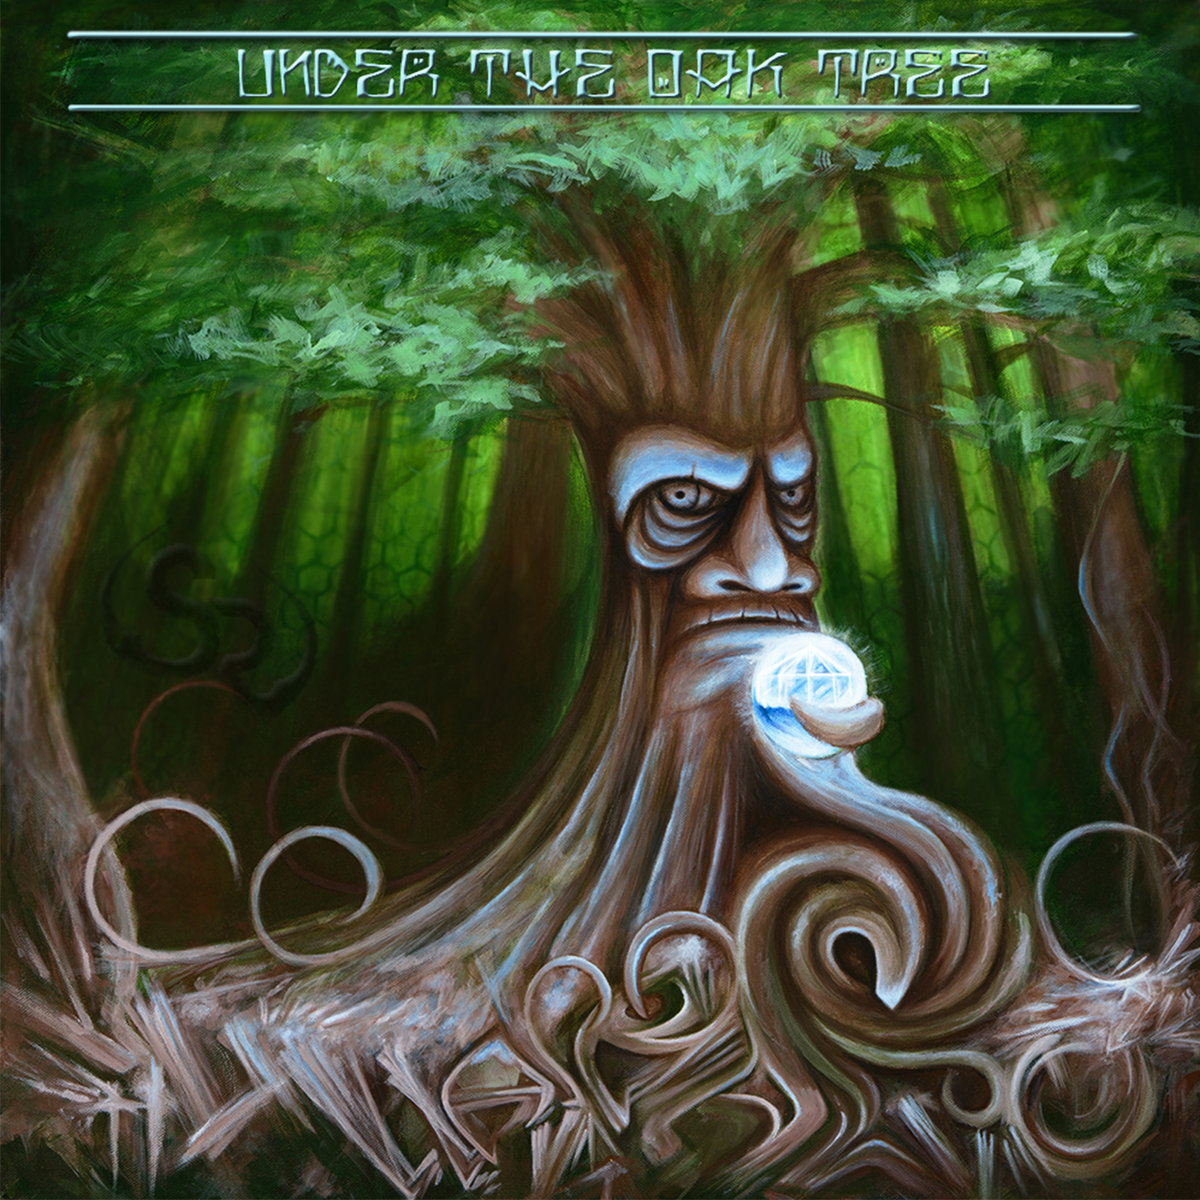 HullabaloO - Ghouls @ 'Under the Oak Tree' album (bass, breakbeat)